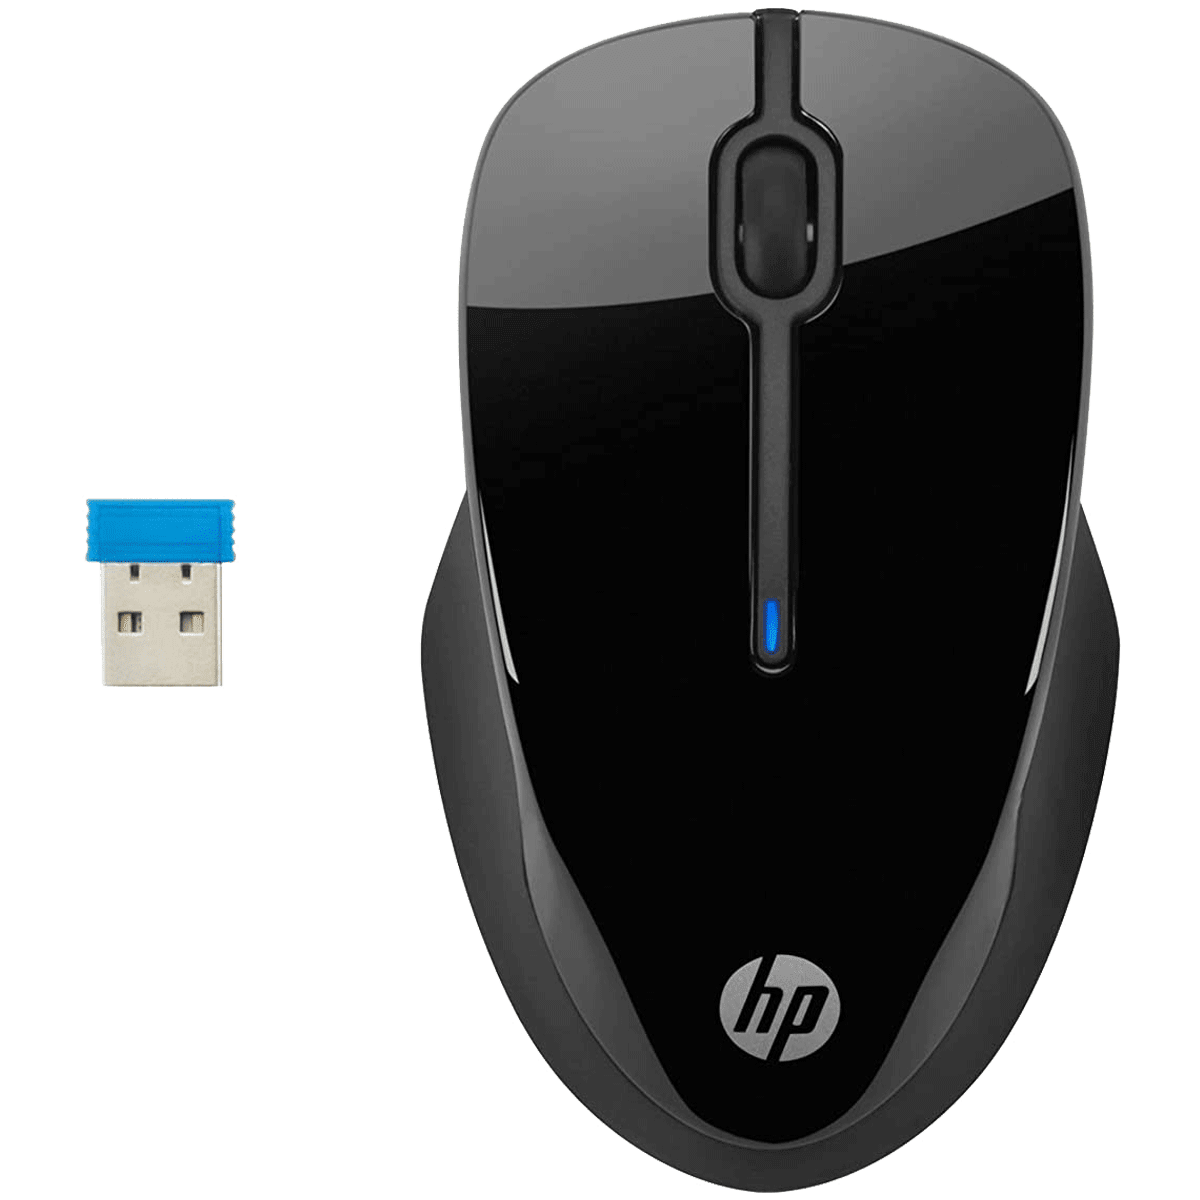 HP 250 Wireless Mouse (Contoured Shape Designed, 3FV67AA, Black)